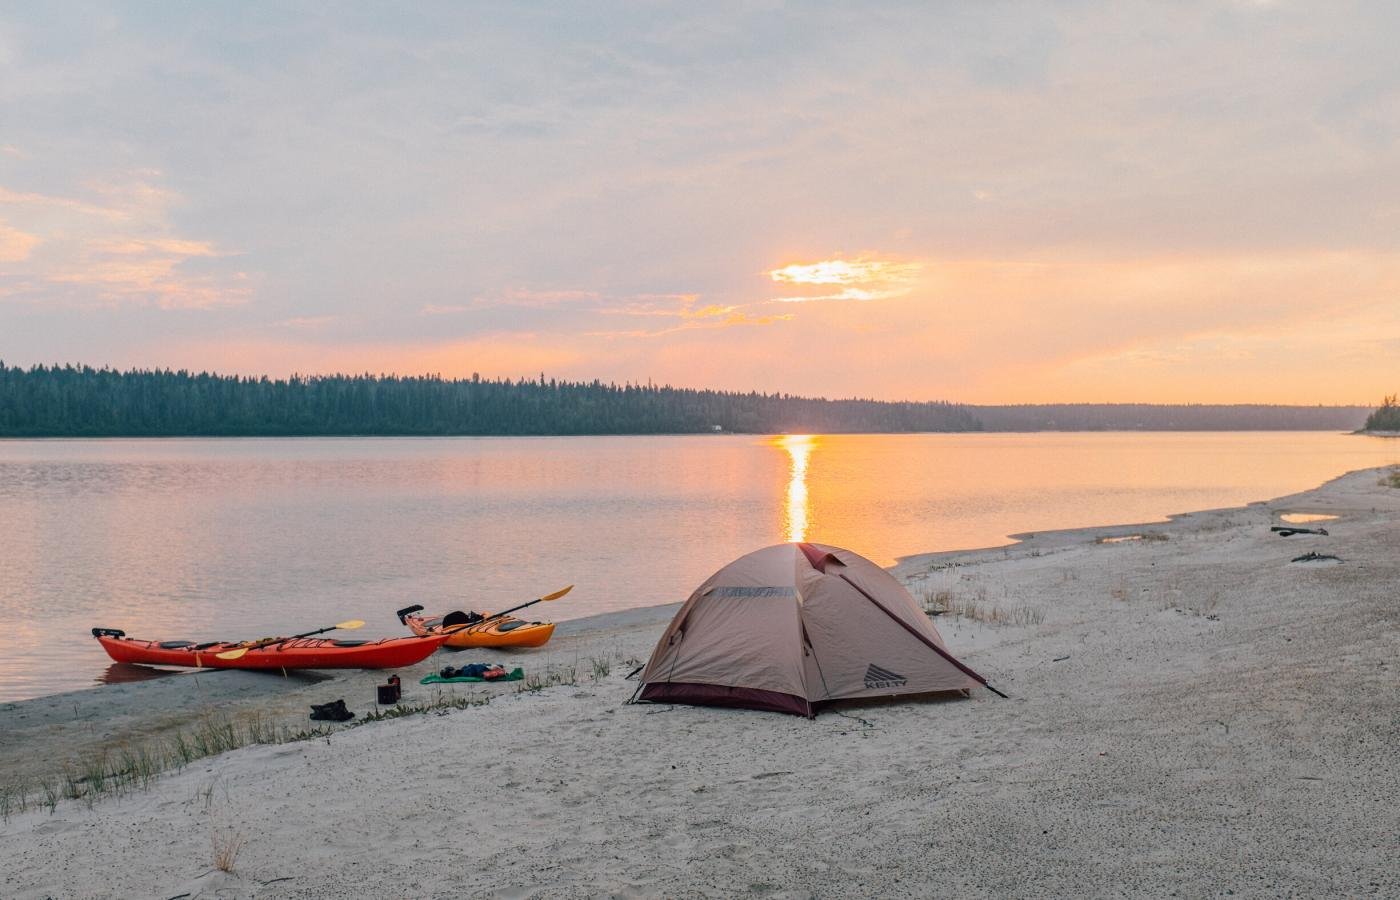 Camping on the shore of a pristine lake in Canada's Northwest Territories